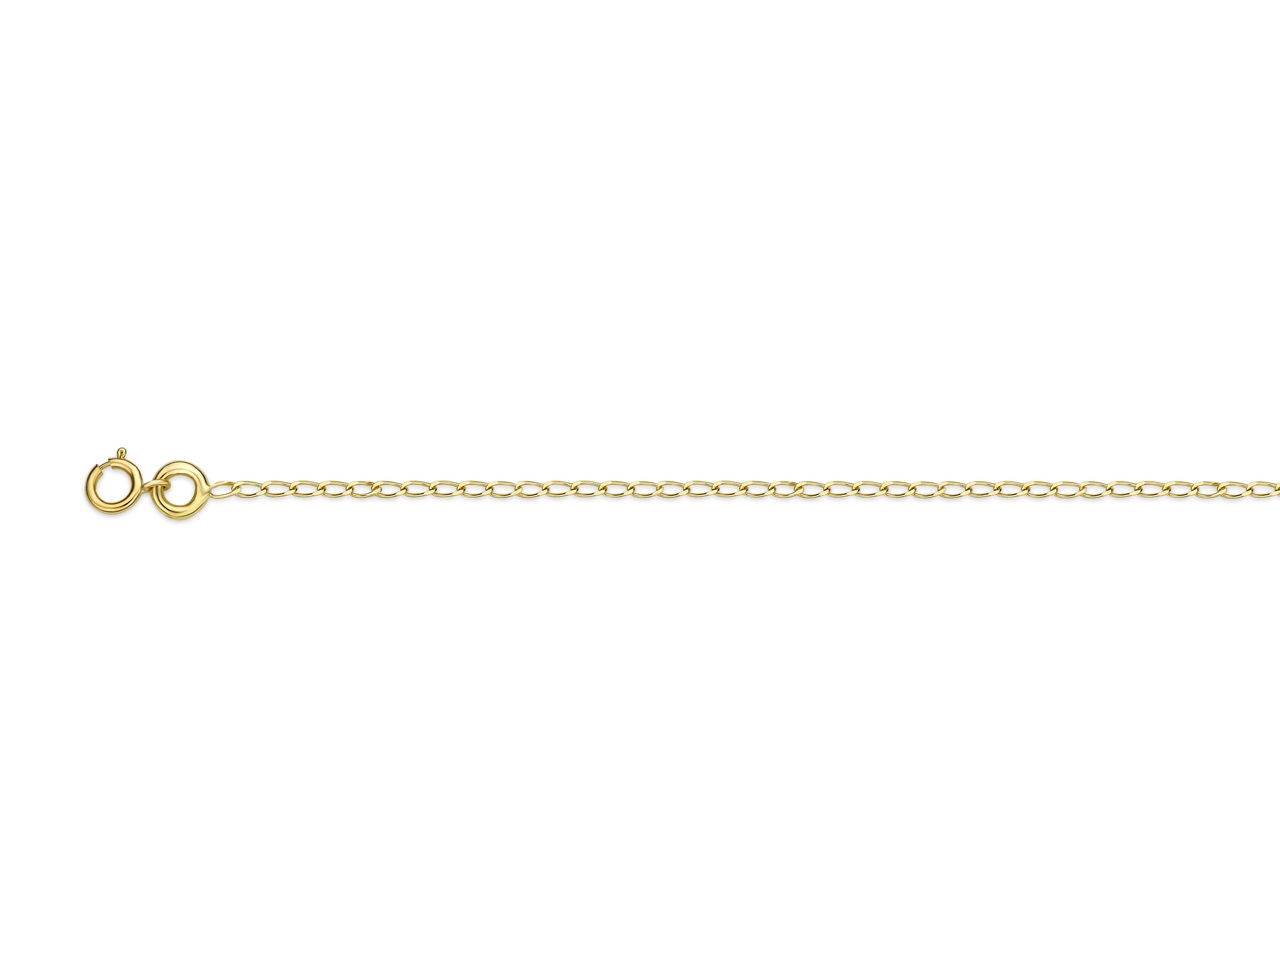 Collier Gourmette cheval 1,05 mm, 40 cm, Or jaune 18k